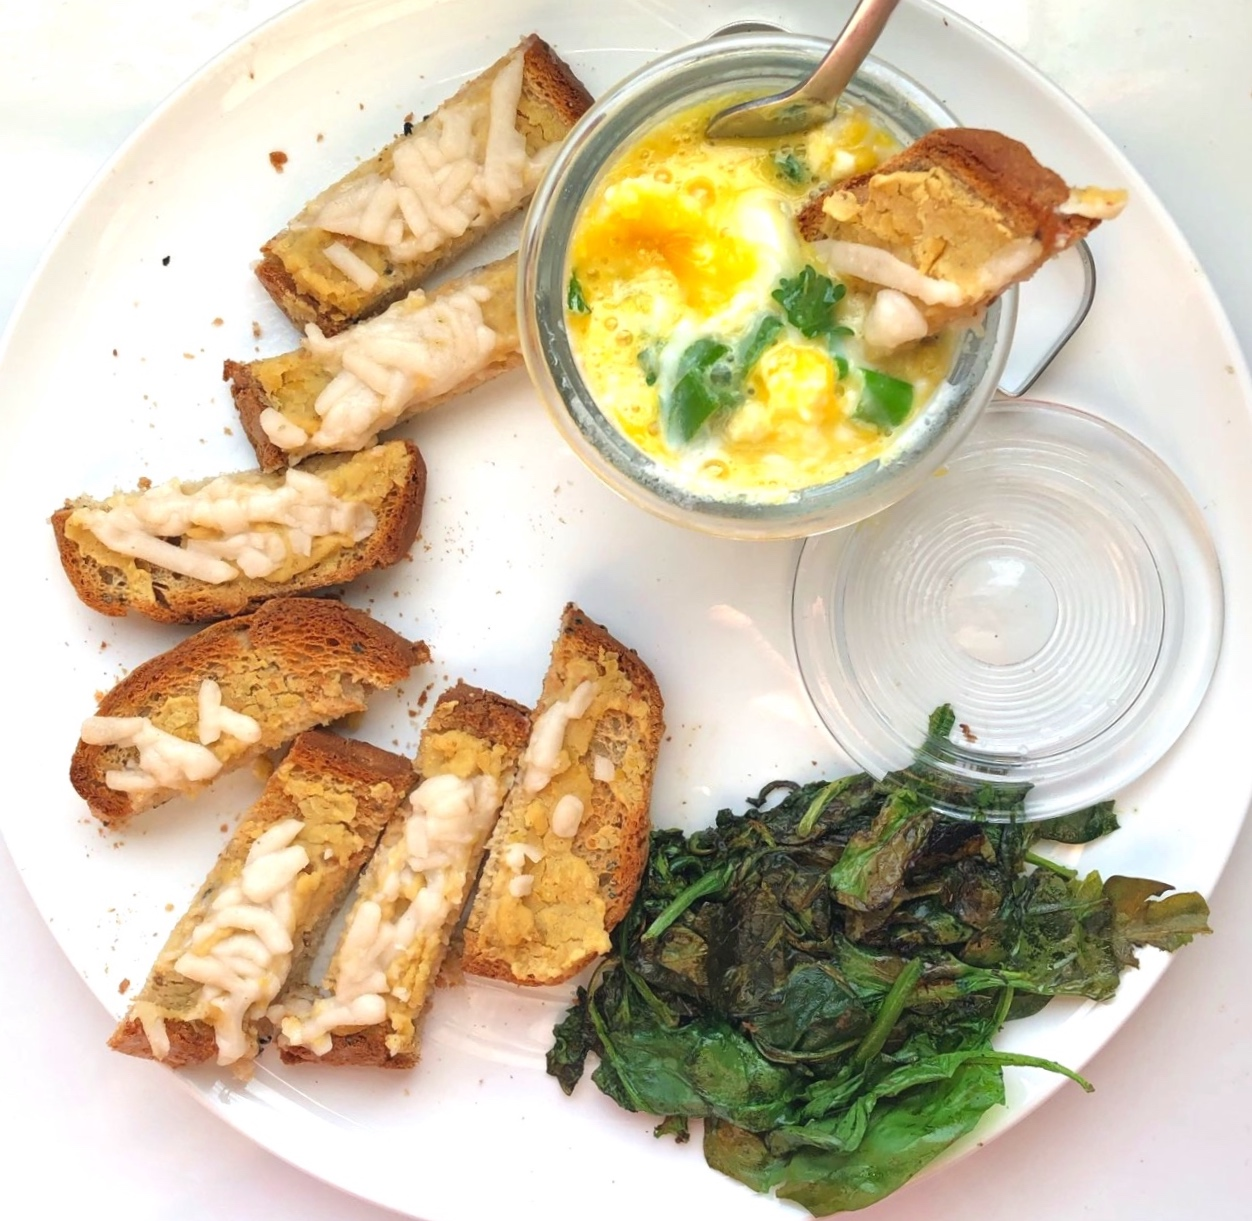 CODDLED EGGS & SOLDIERS - GLUTEN-FREE OPTION